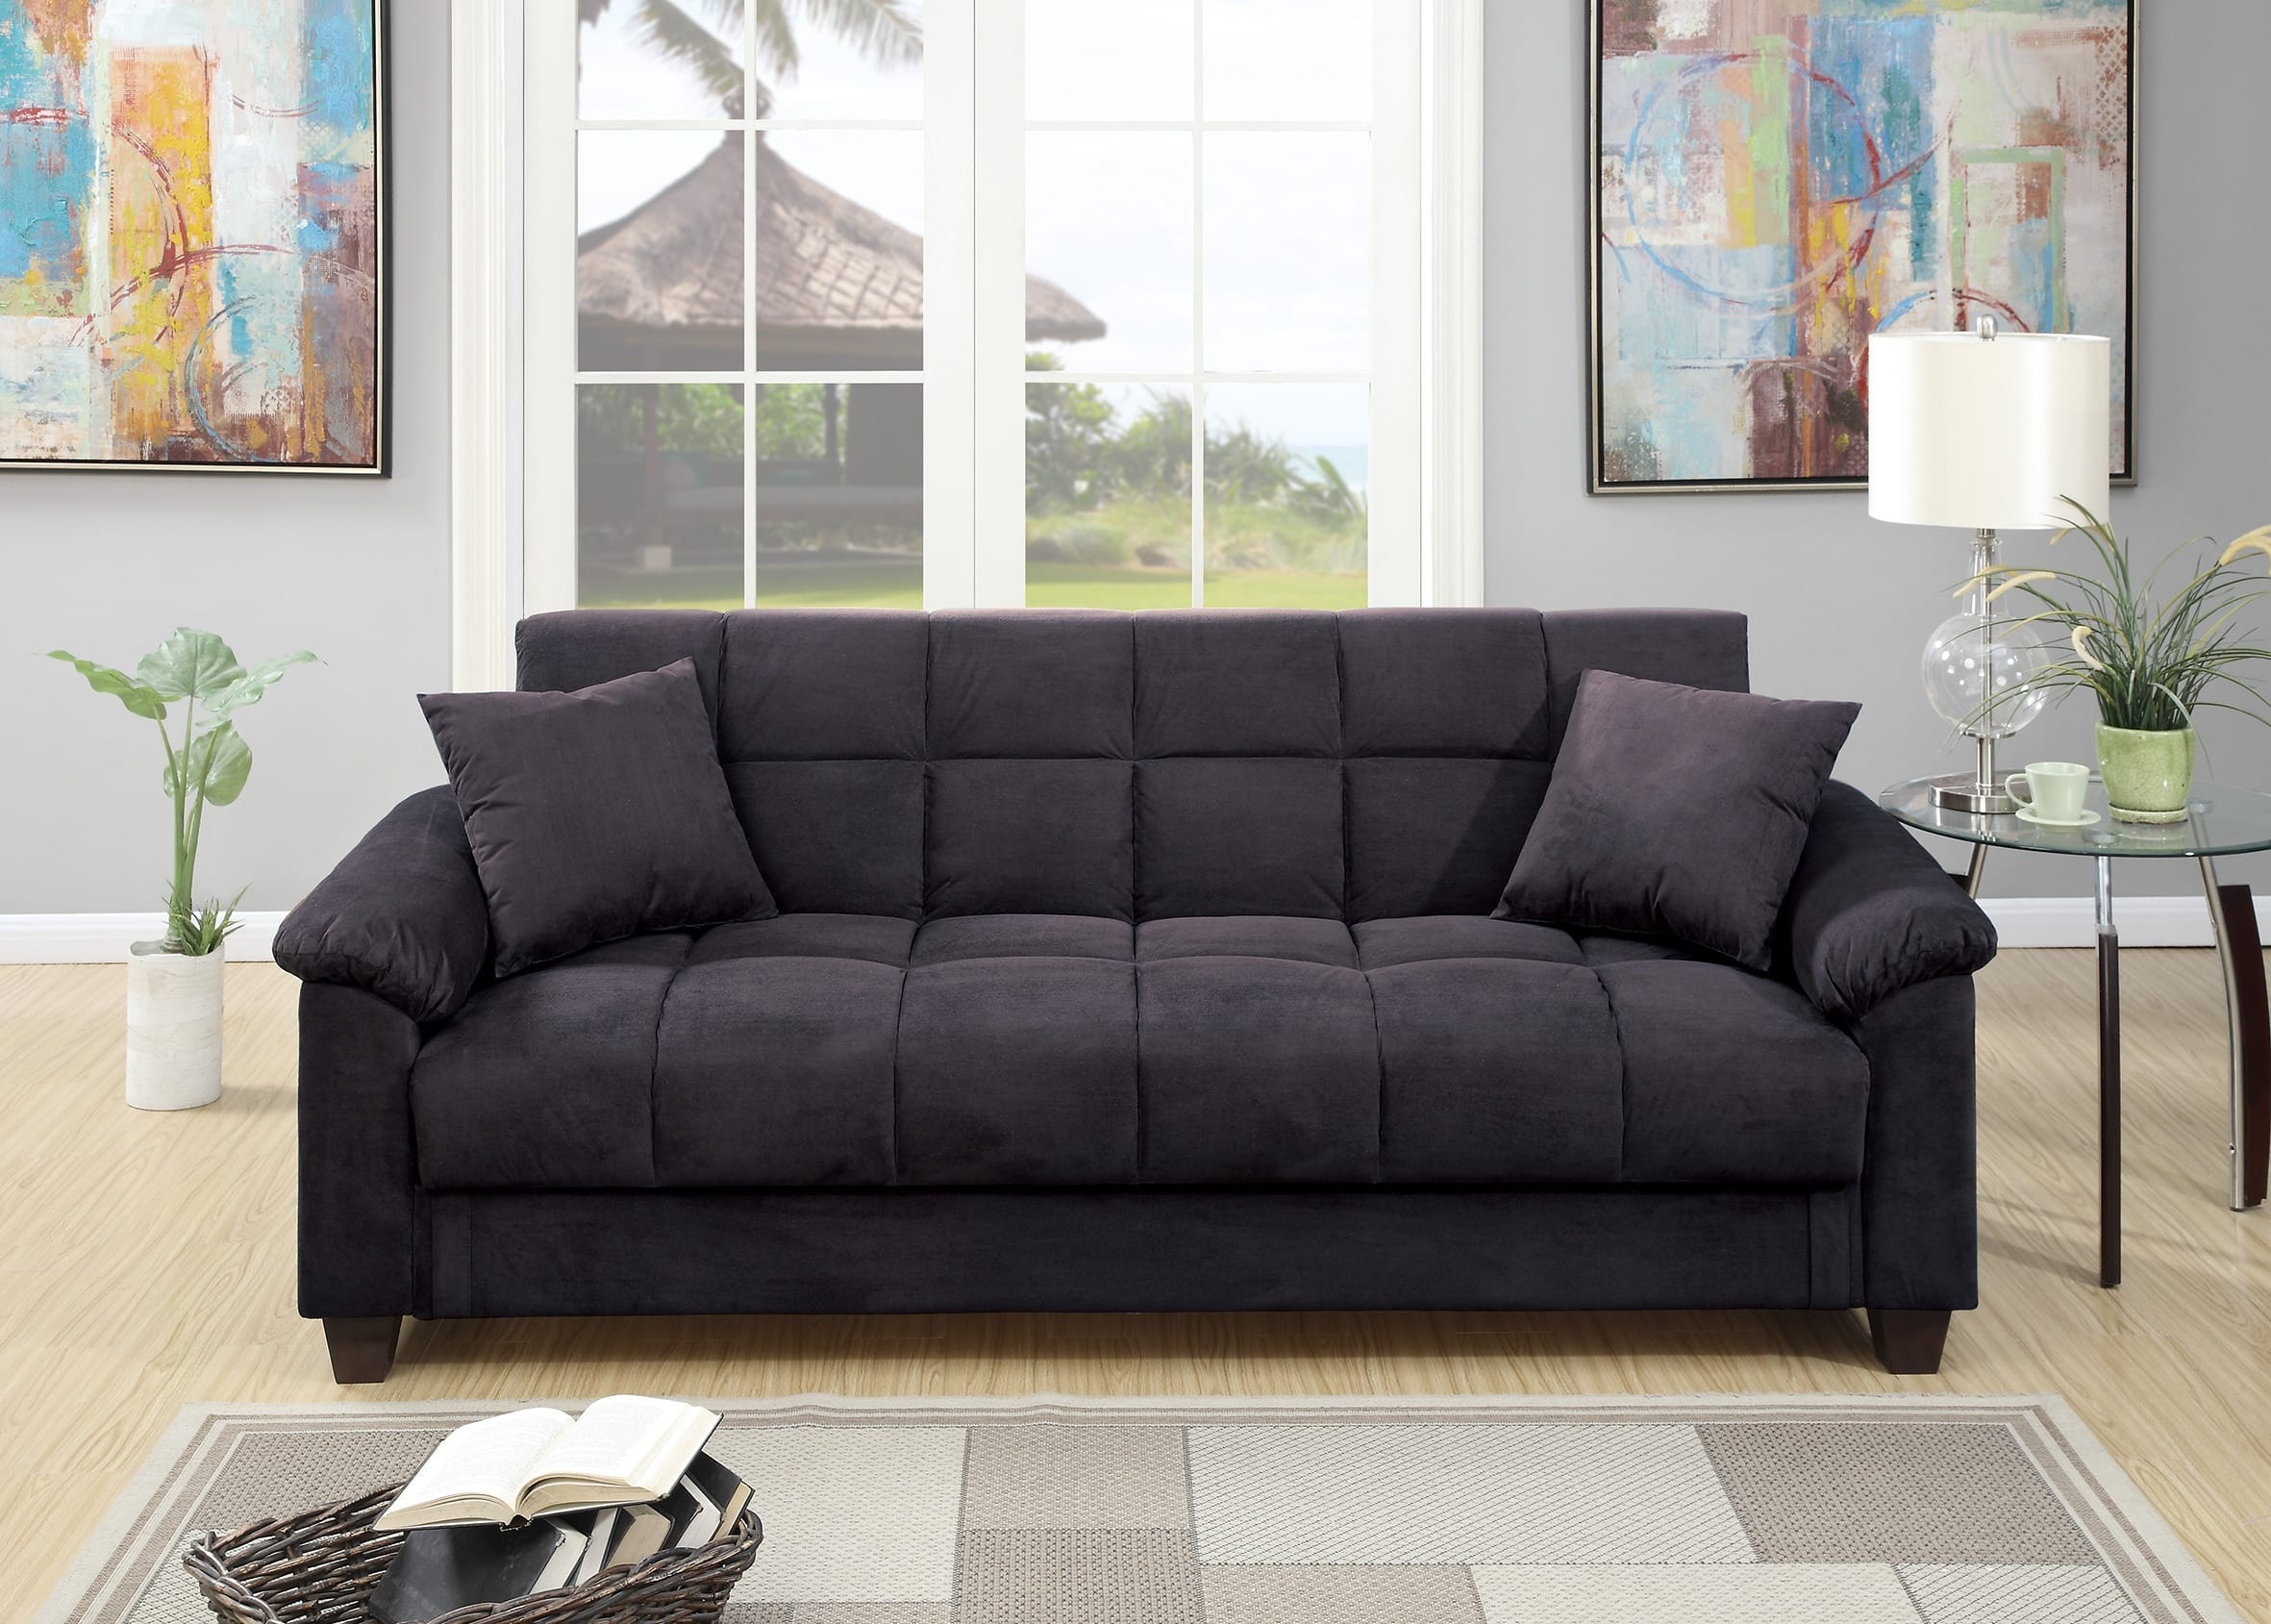 F7888 Ebony Convertible Sofa Bedpoundex Intended For Convertible Sofas (View 4 of 15)